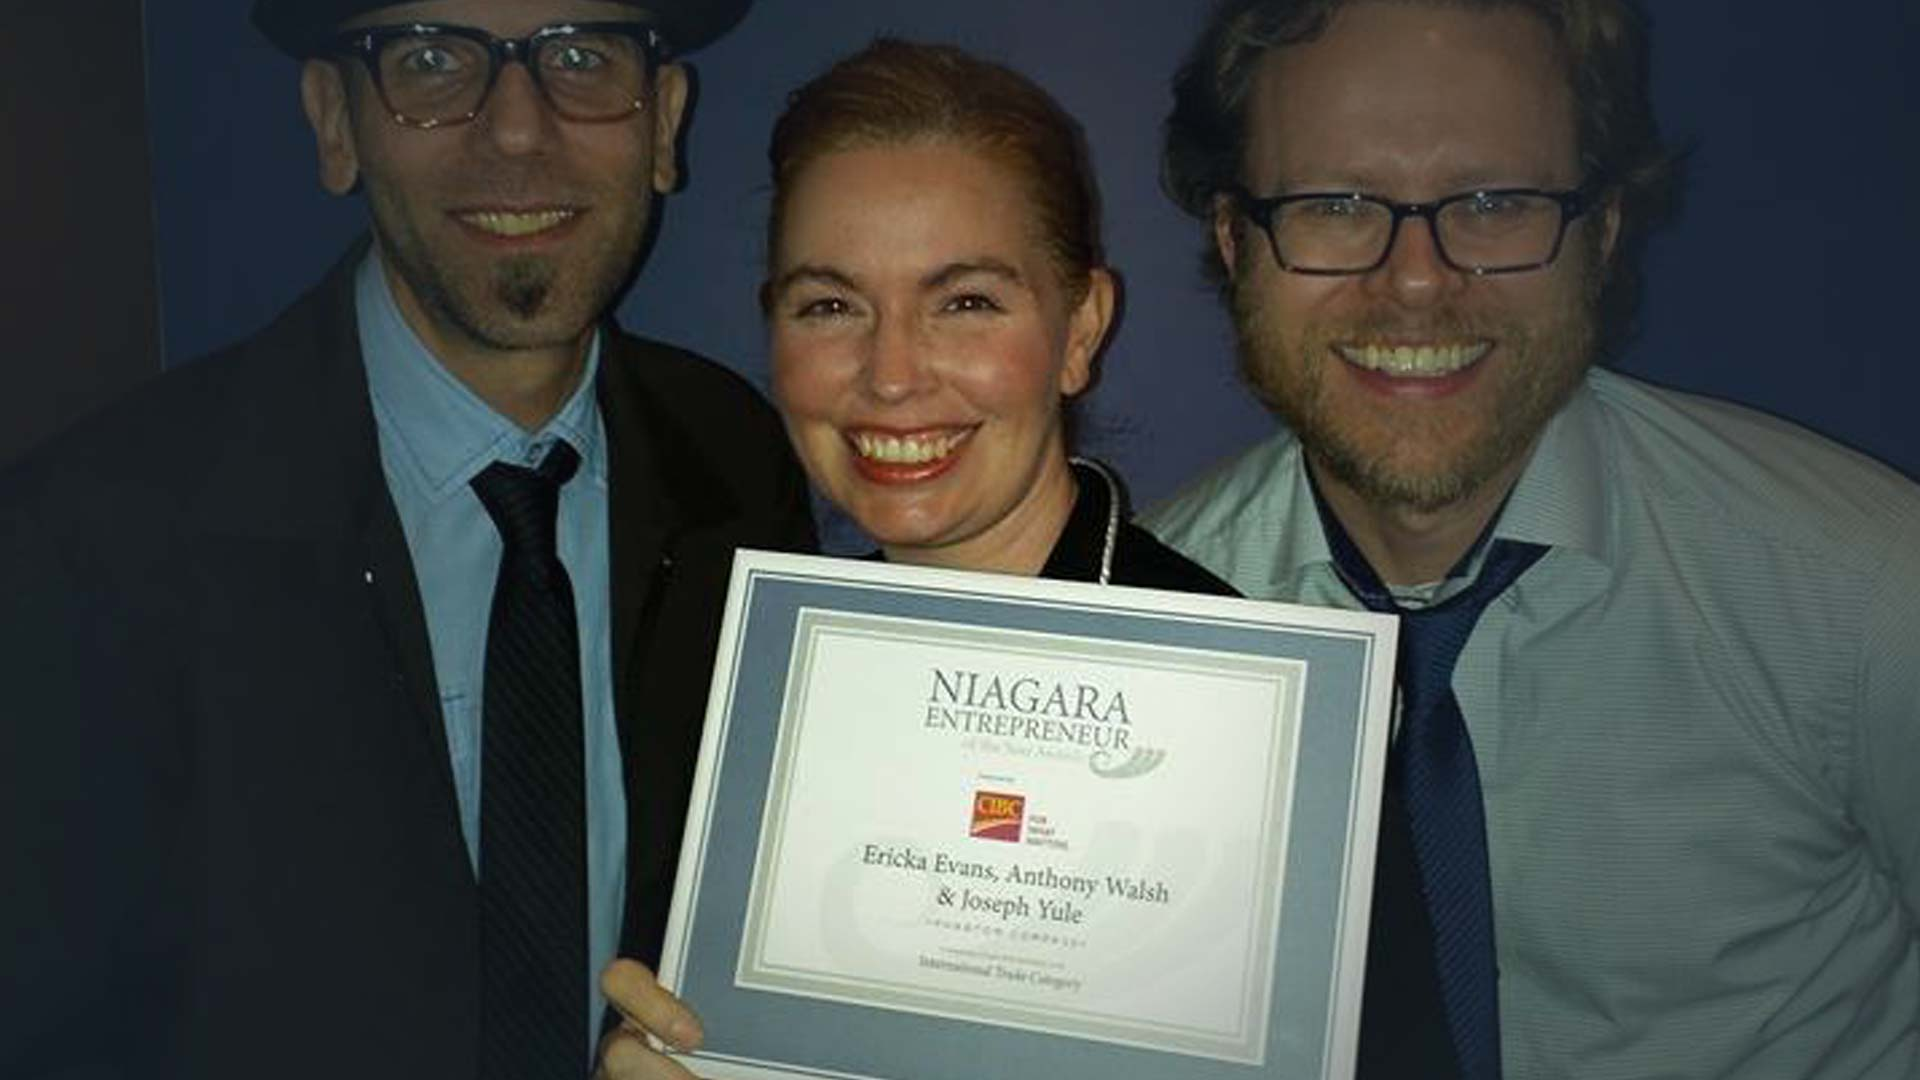 2015 - NOMINEEINTERNATIONAL TRADENiagara Entrepreneur of the Year AwardSt. Catharines, Canada